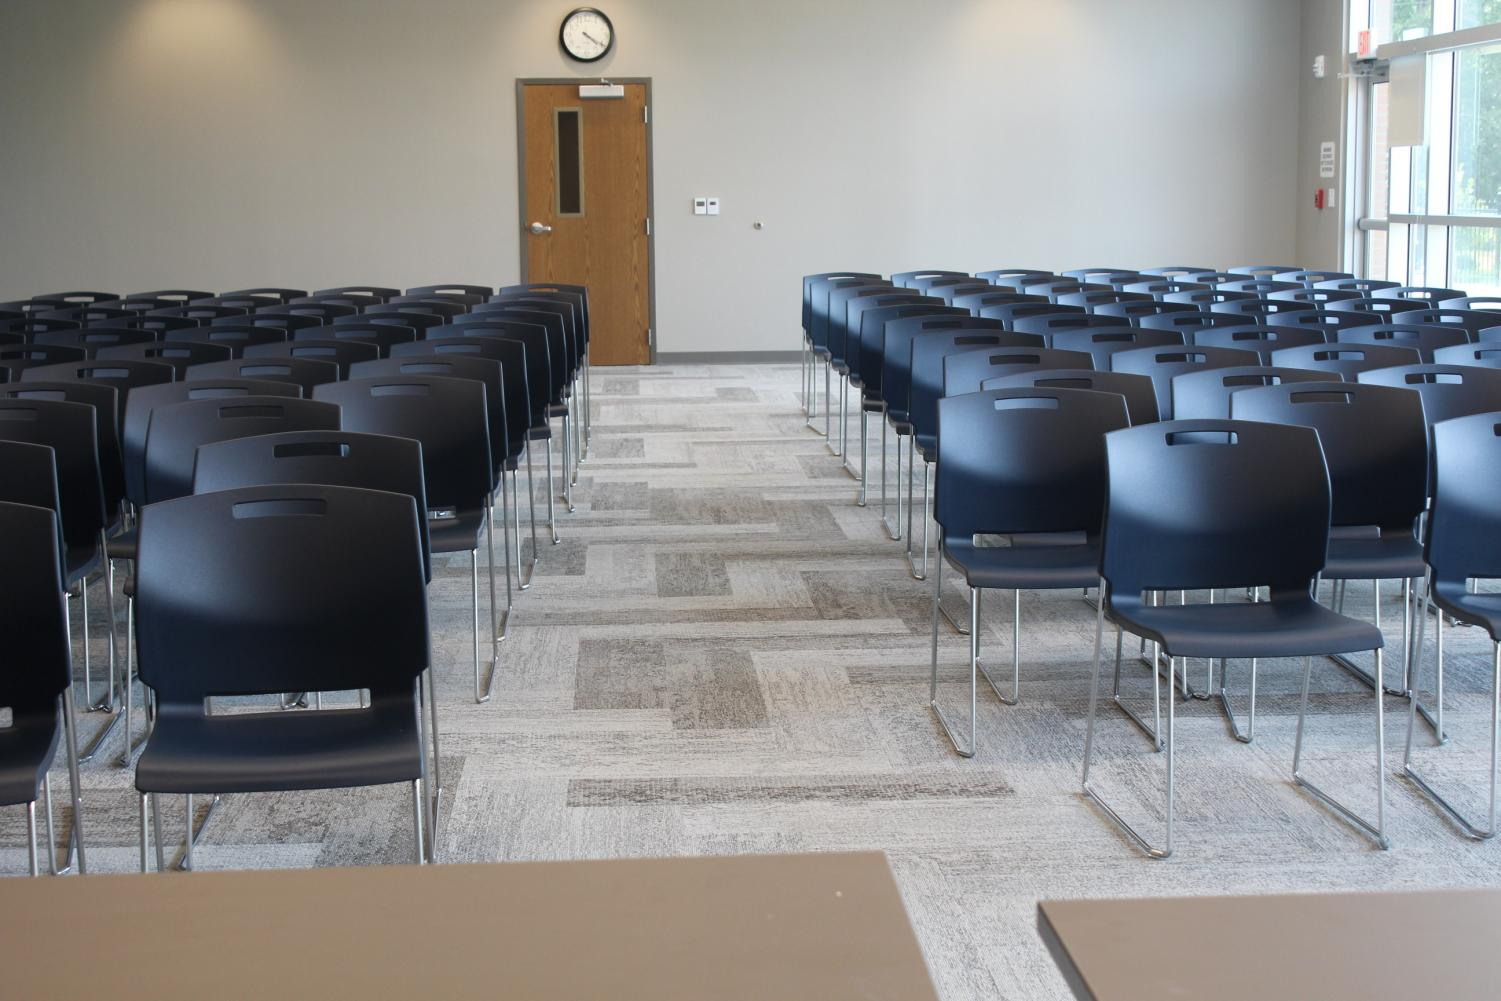 +The+large+meeting+room+will+act+as+a+conference-like+center+for+local+businesses+or+corporate+meetings.+It+costs+%2425+for+however+long+a+group+needs+the+space.+